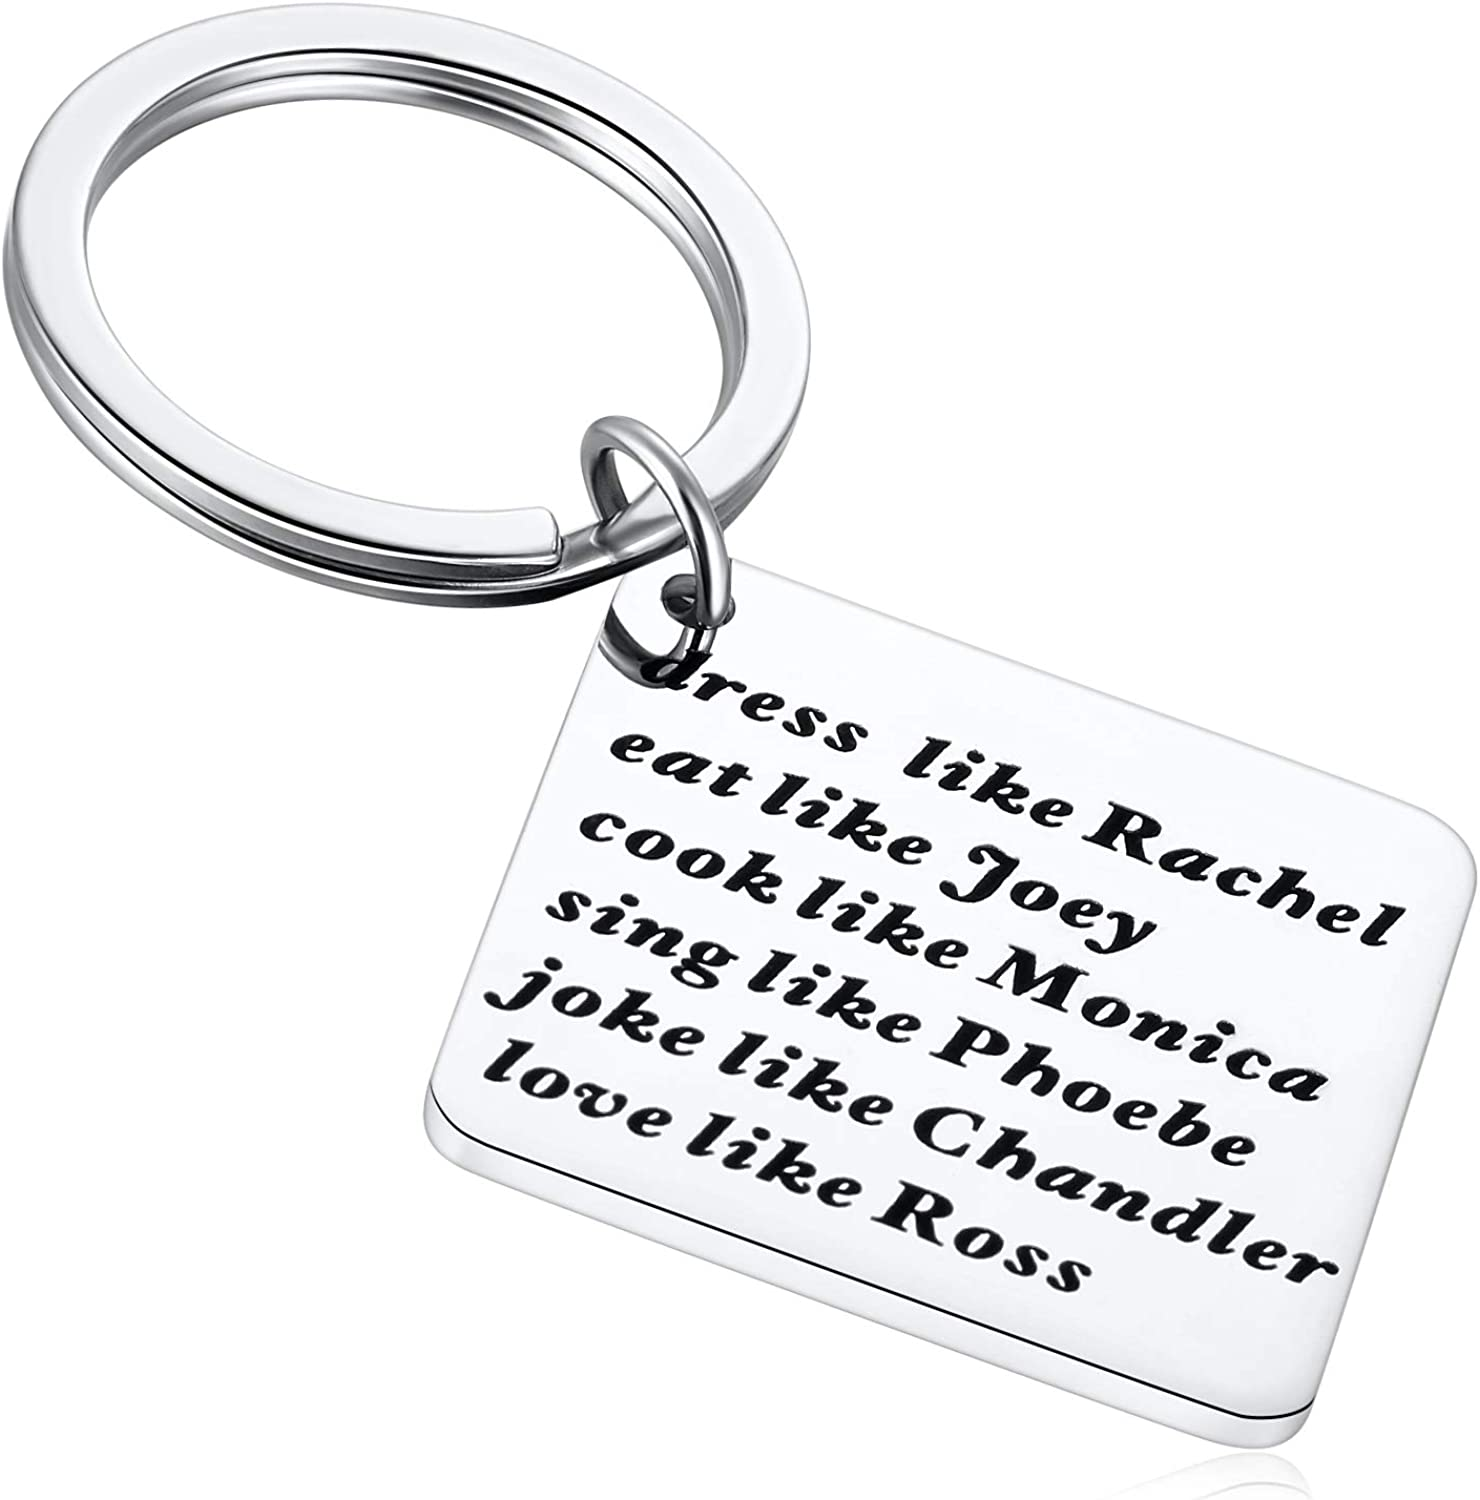 Friends TV Show Central Perk Dress Like Rachel, Eat Like Joey, Cook Like Monica, Love Like Ross, Funny Keychain Gag Gift